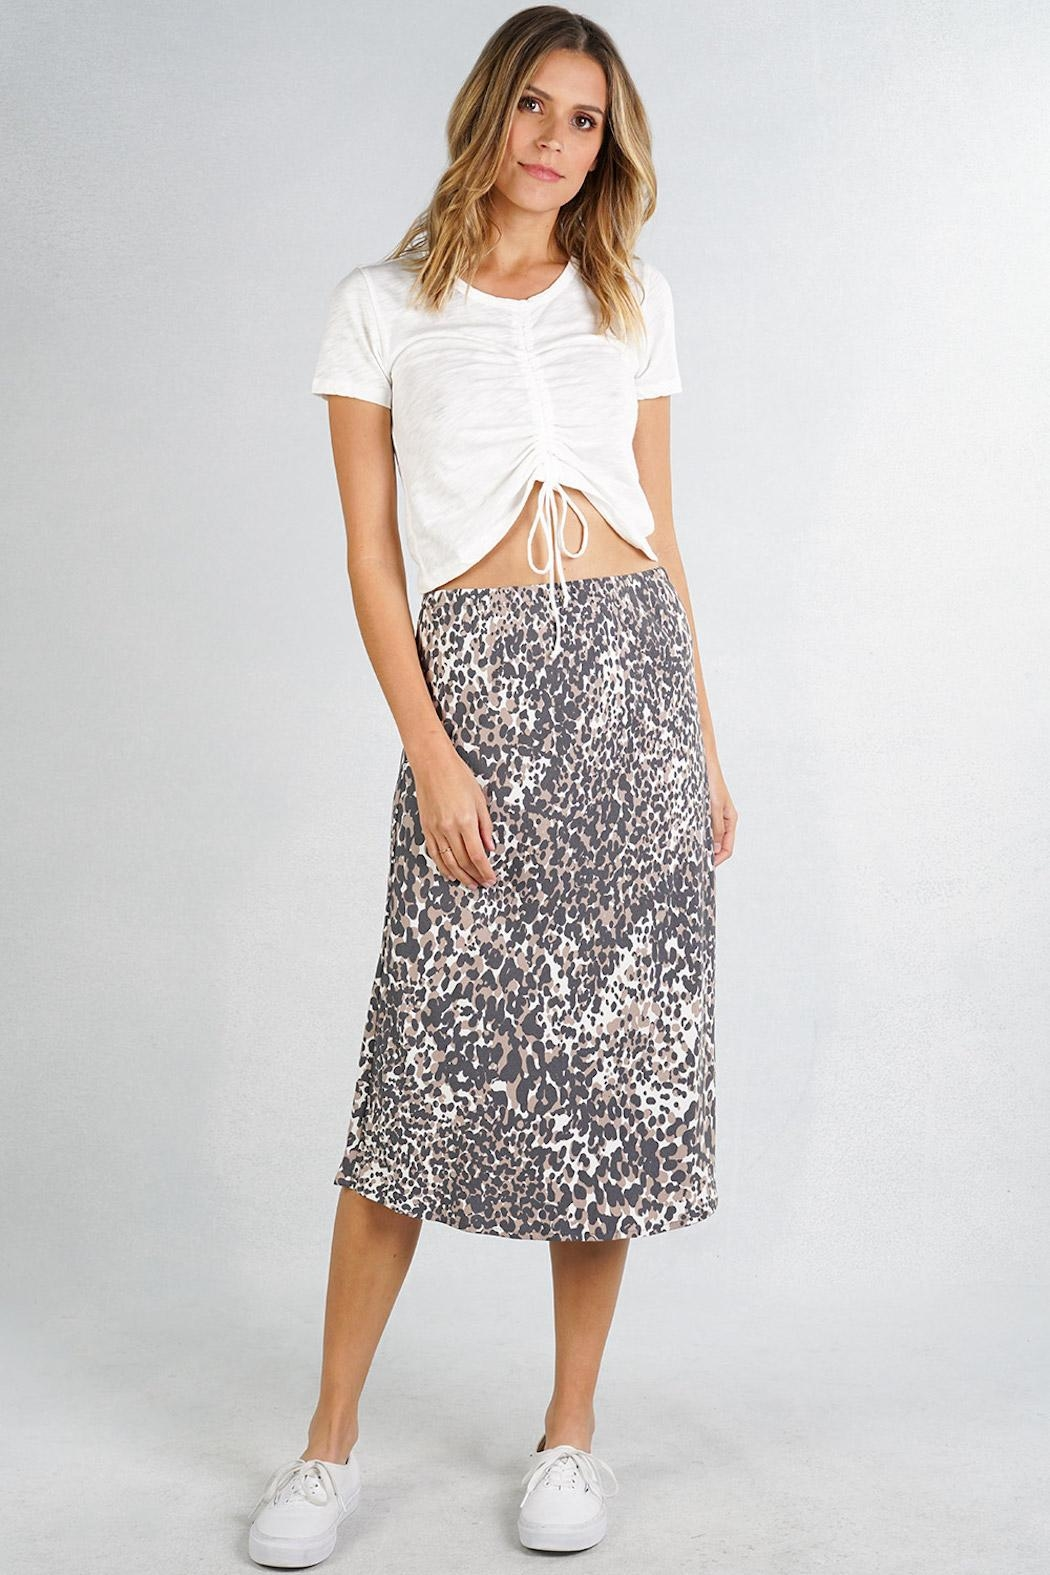 Lovestitch Leopard Midi Skirt - Main Image